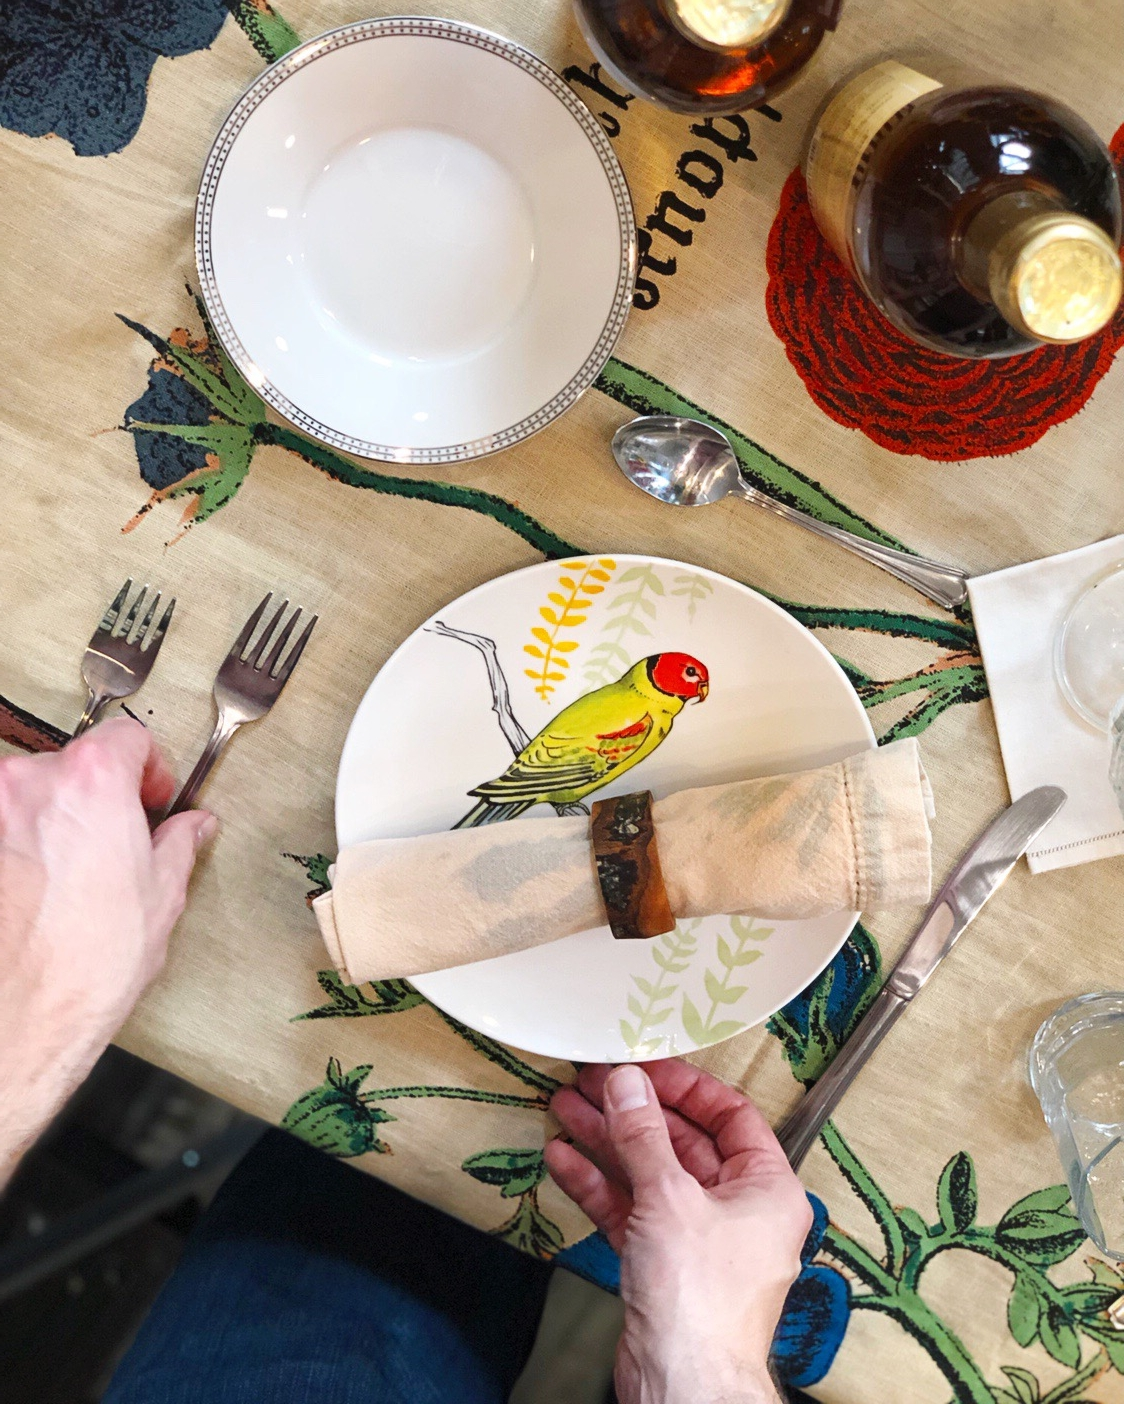 Bird plates and fancy china at the same table. Mix and match bohemian style makes a formal table or event more approachable and fun. When you let go of the rules, your guests will have a great time.